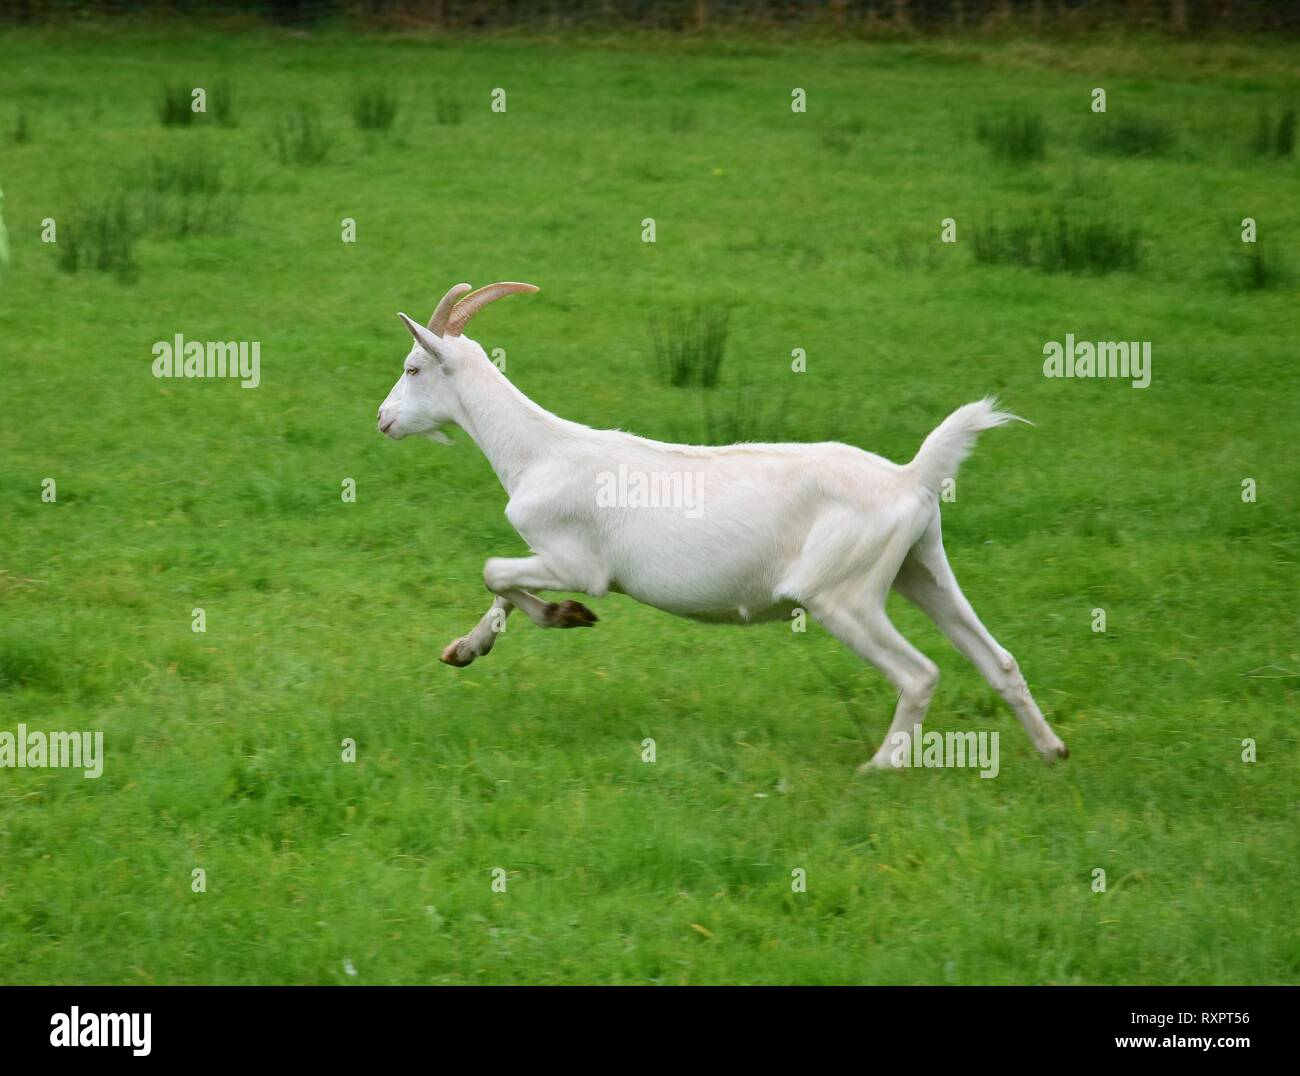 A white goat with horns running on a meadow in Ireland. - Stock Image